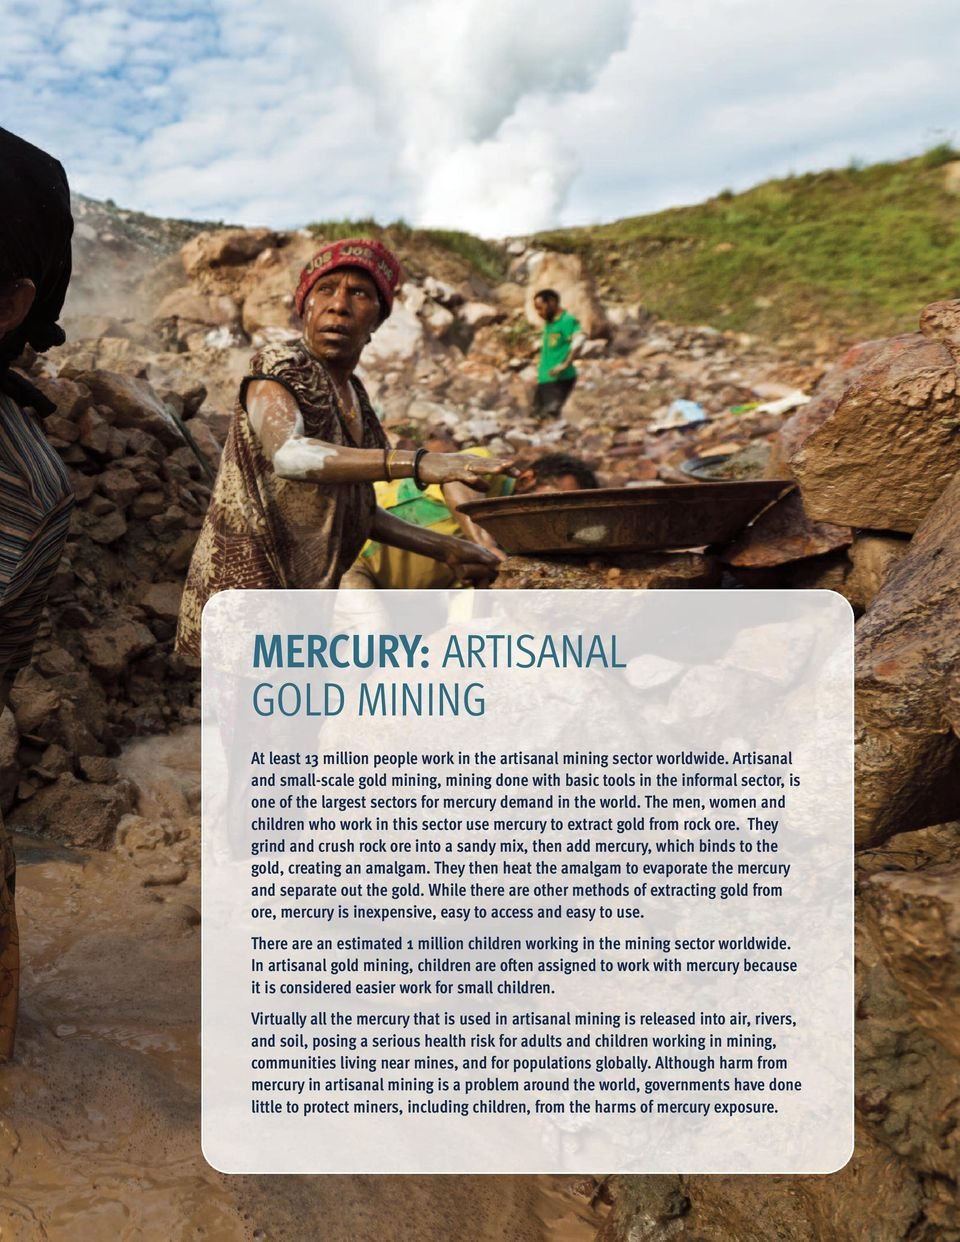 The men, women and children who work in this sector use mercury to extract gold from rock ore.